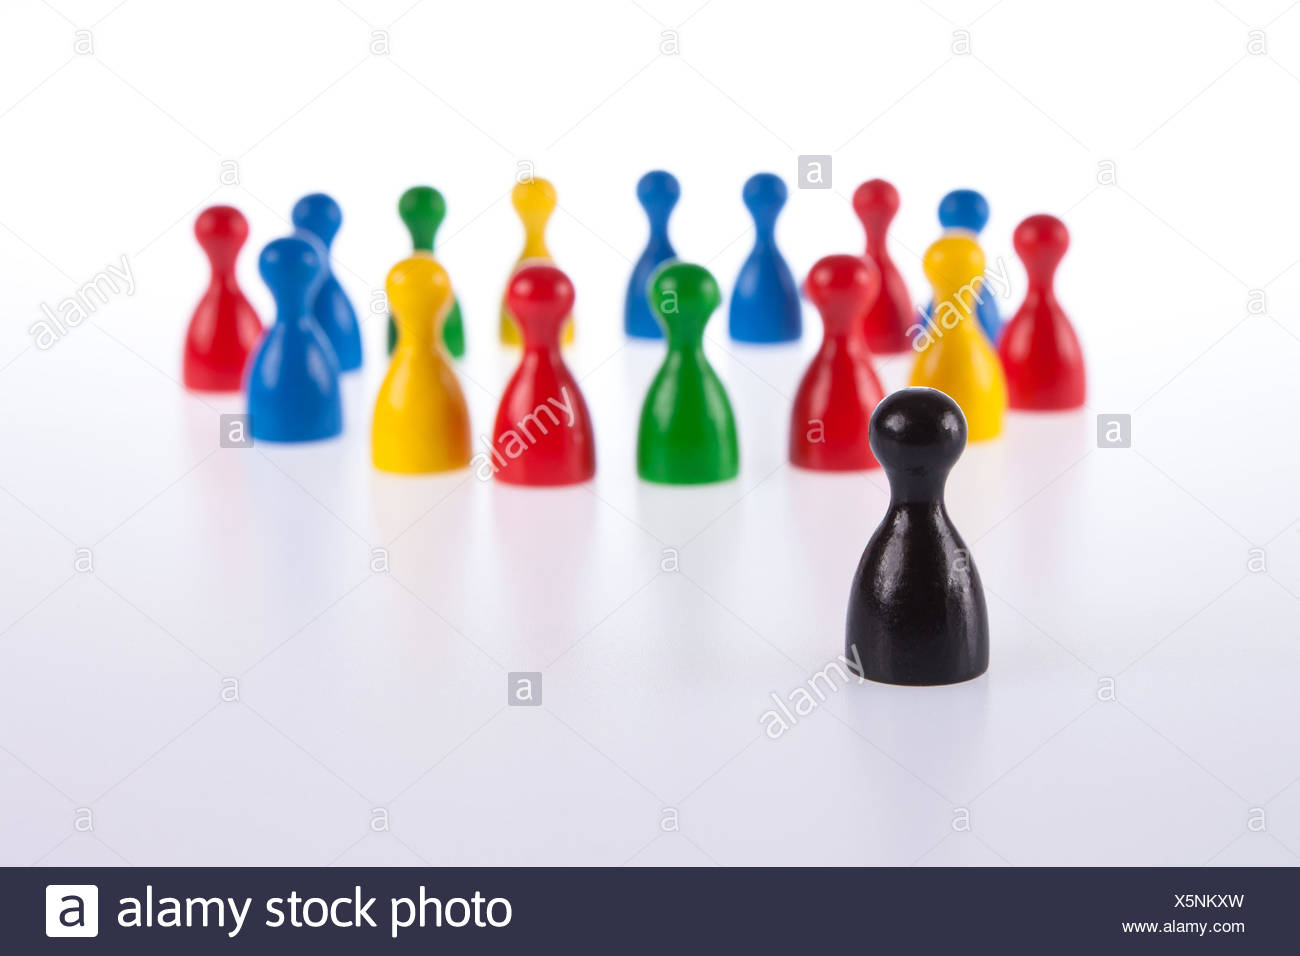 Gaming pieces symbolise exclusion, - Stock Image